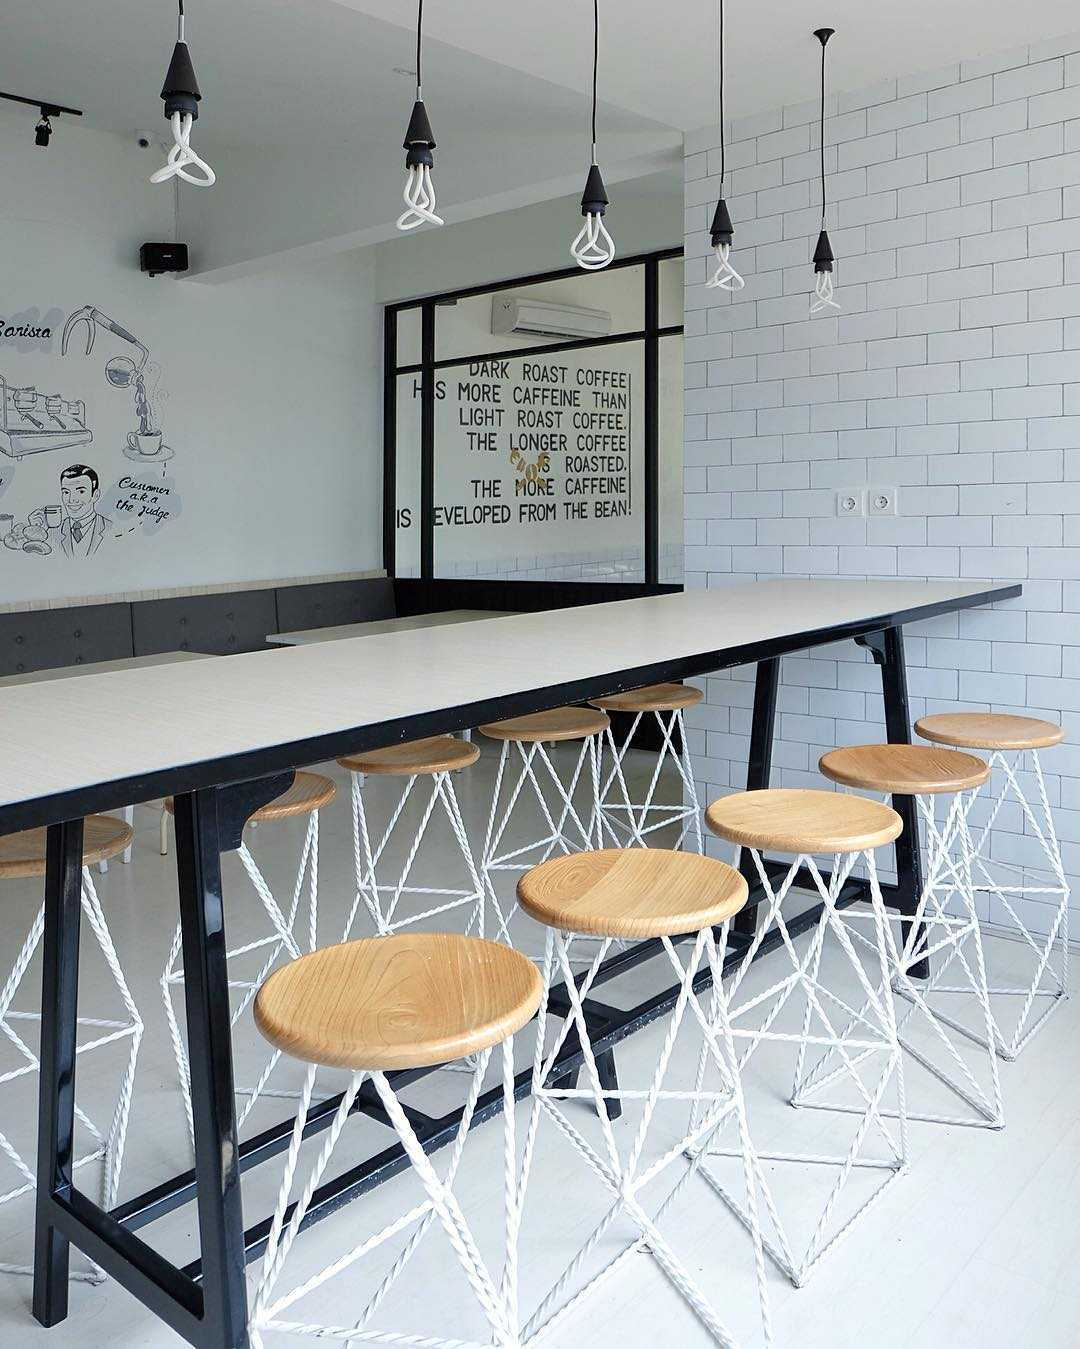 Soseki Design Studio Viverri Coffee Shop Muara Angke Muara Angke Seating Area Interior View Modern,skandinavia 22397